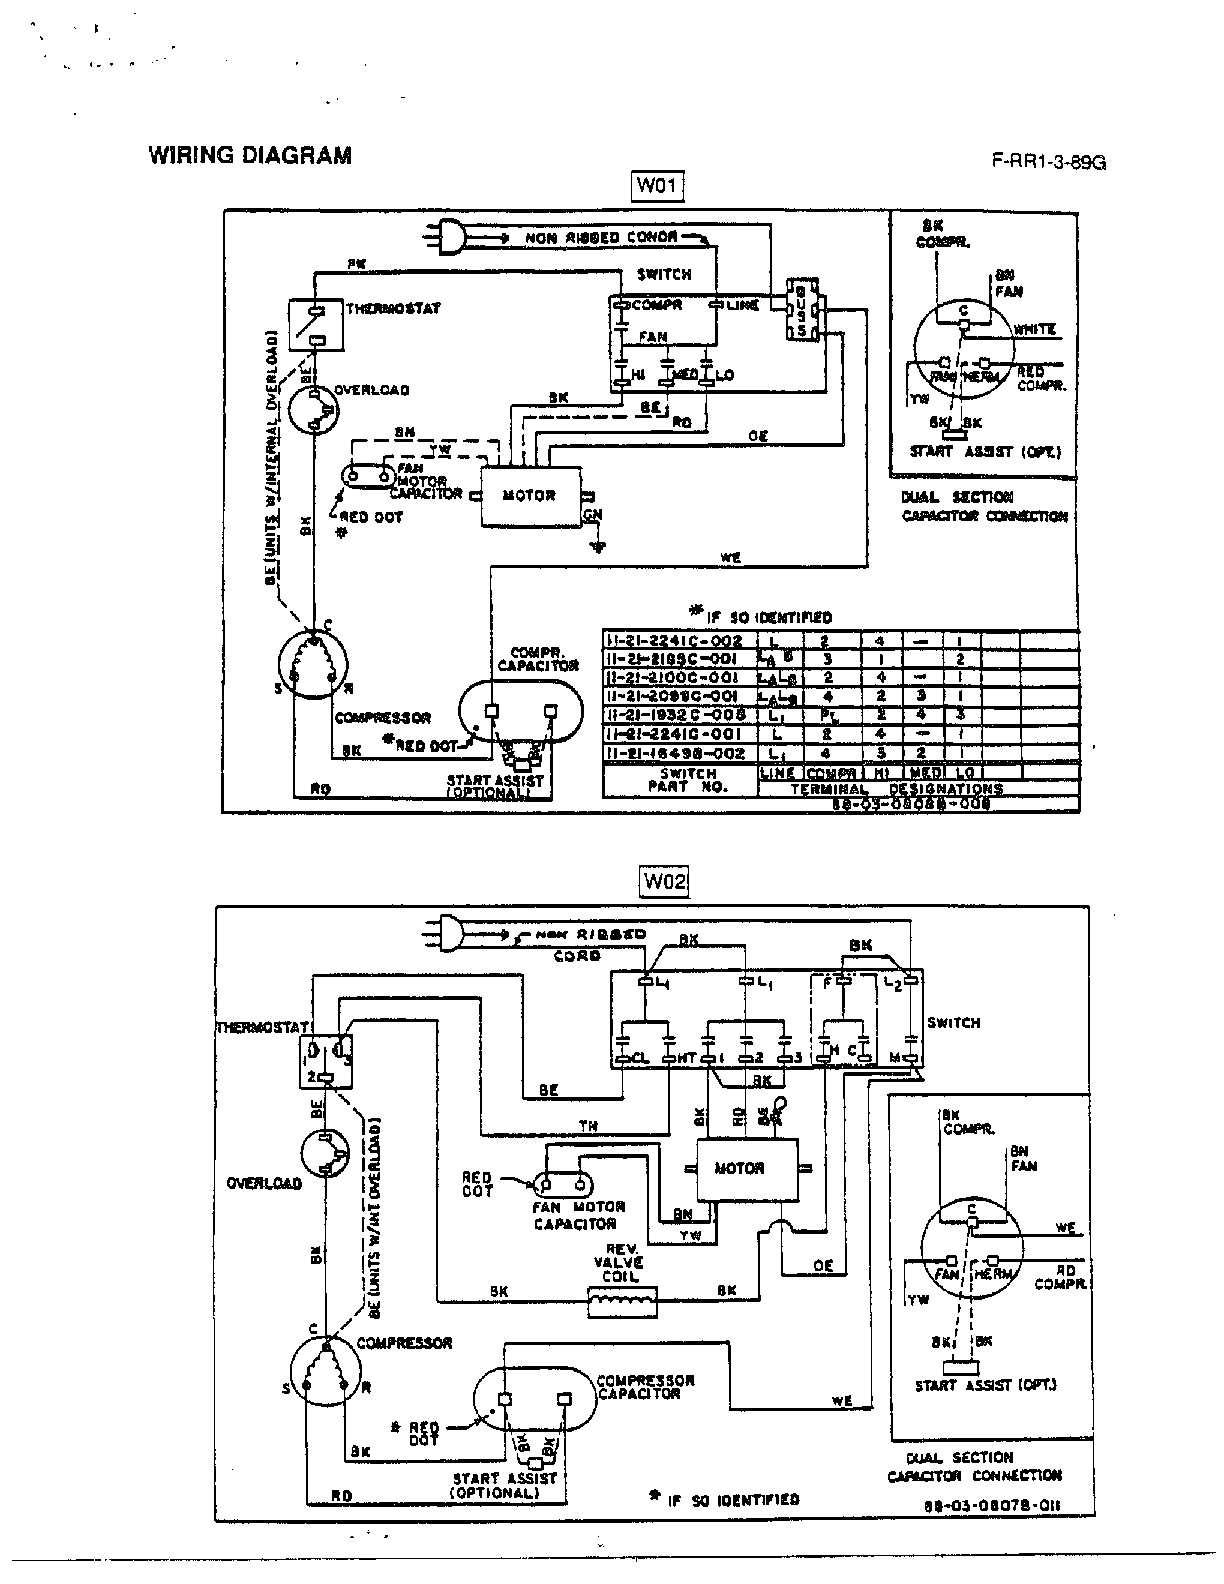 Brisk Air Air Conditioner Wiring Diagram Wiring Diagram Air Conditioner Parts Room Air Conditioner Washer Parts